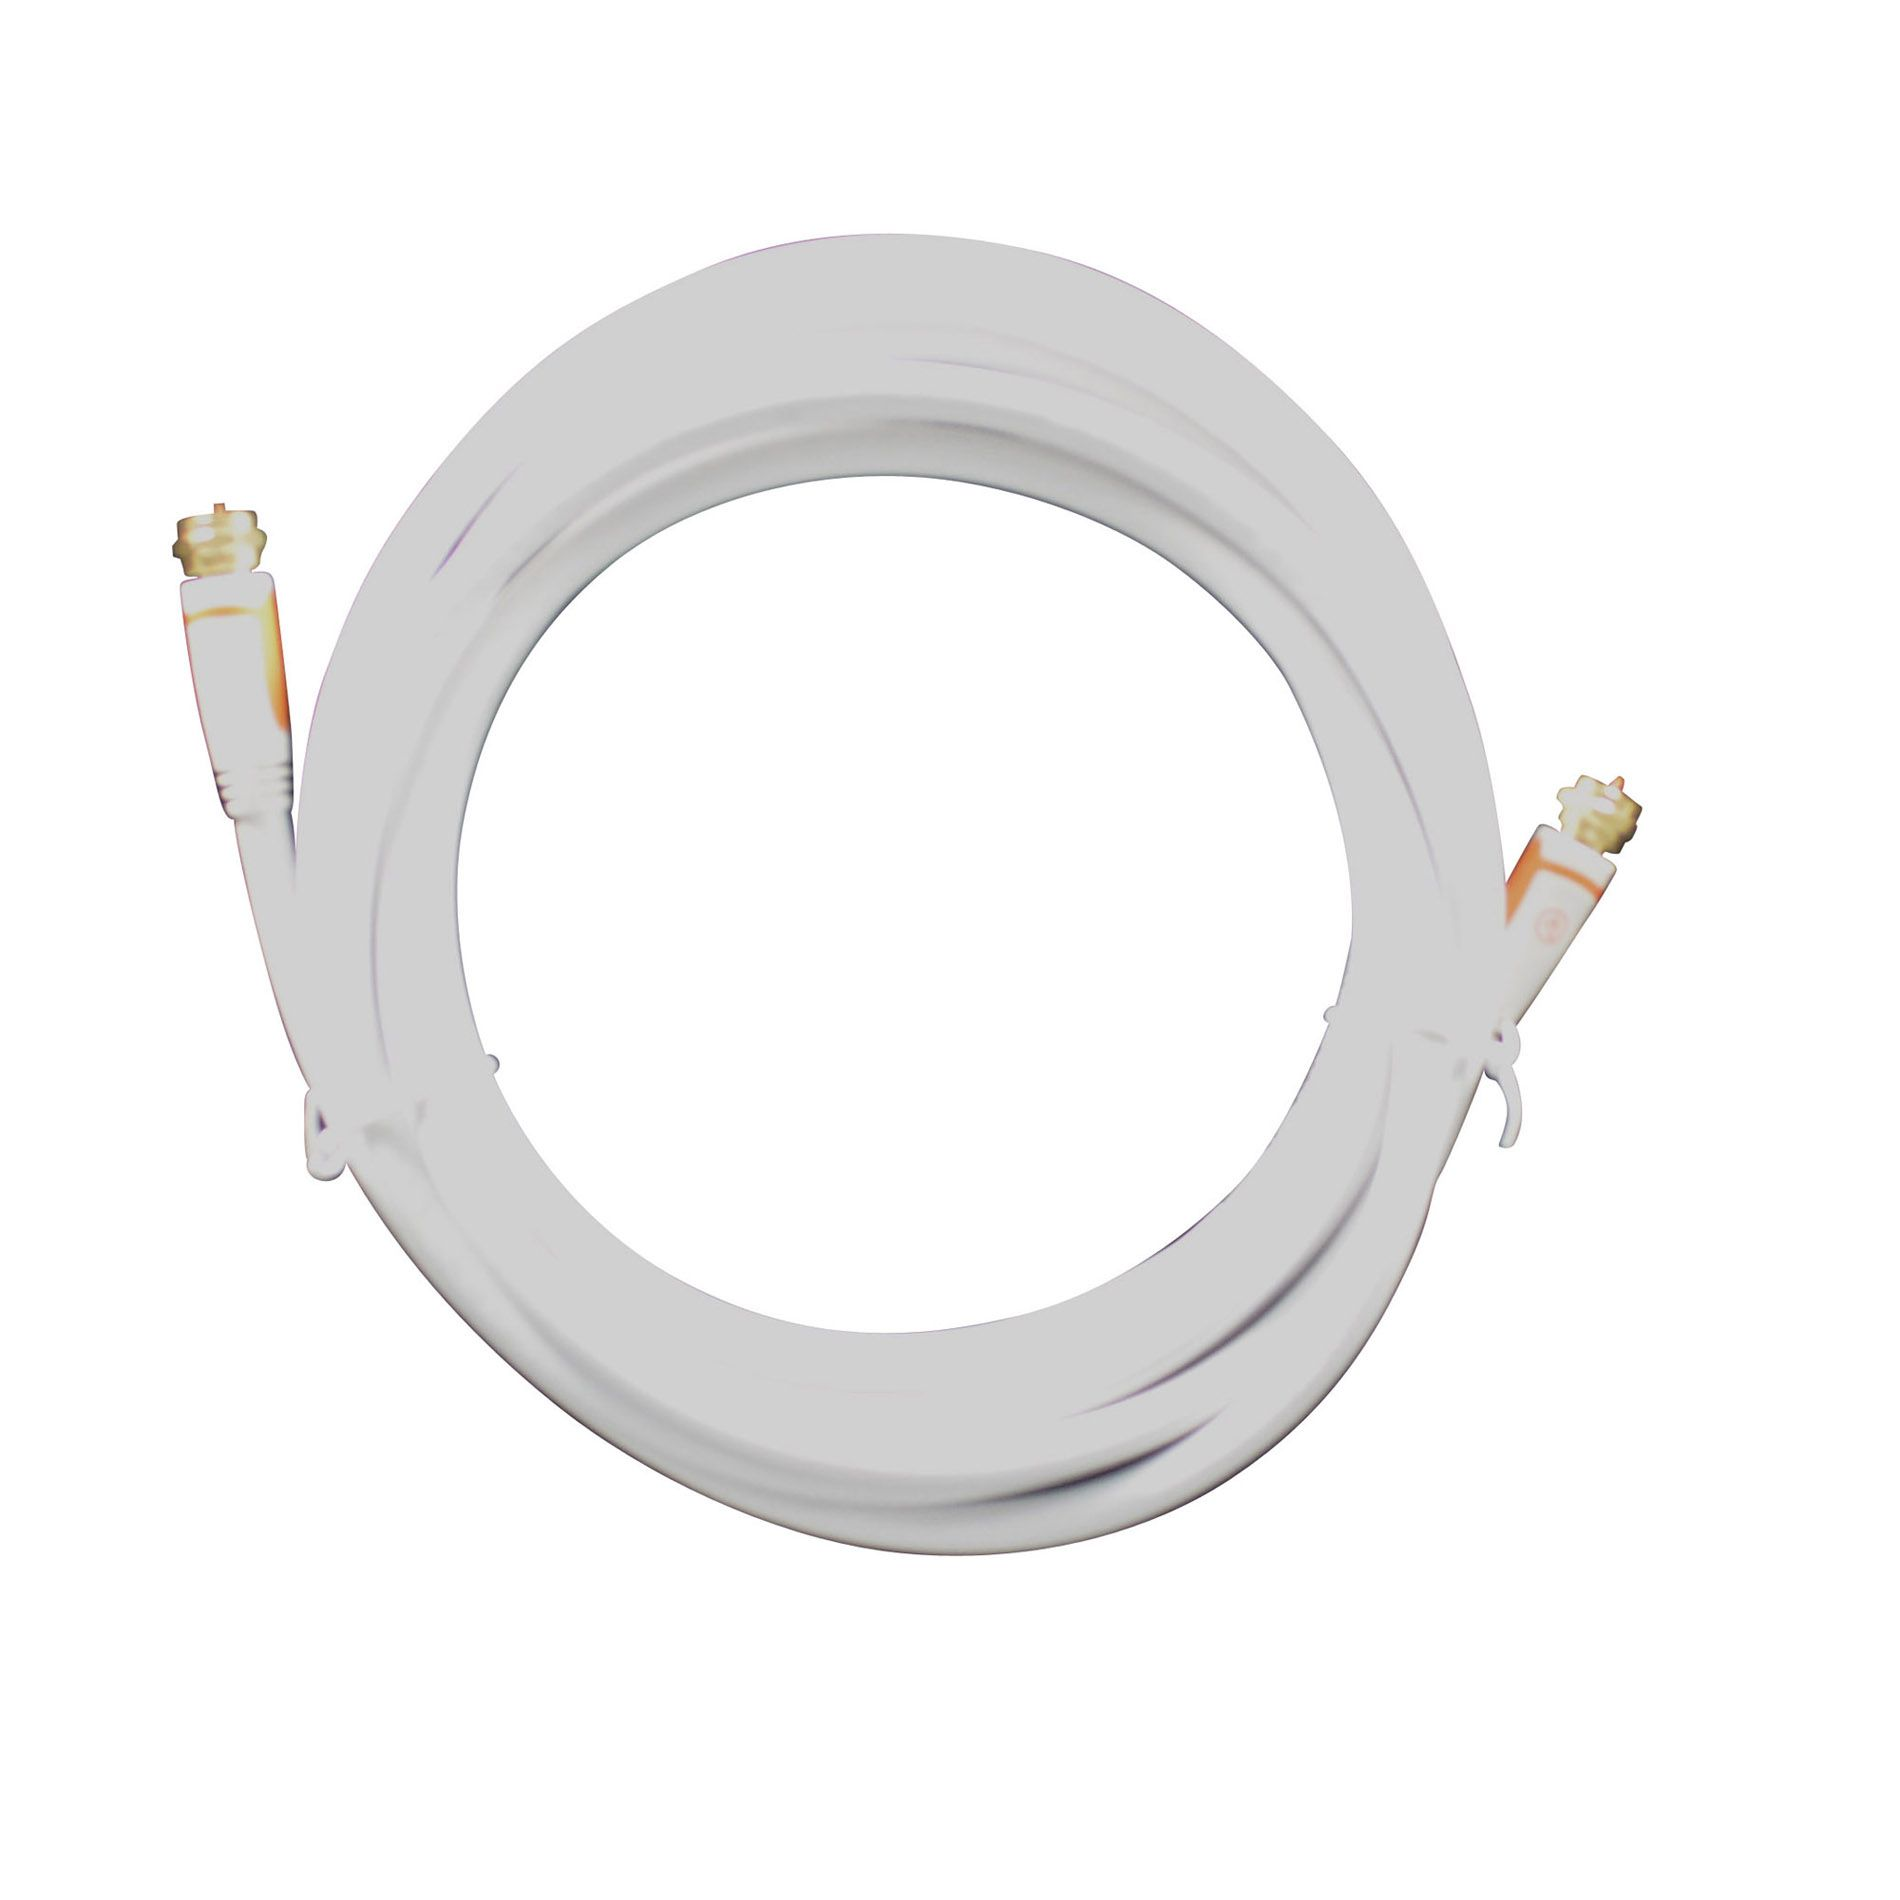 Alphaline™ 12' RG6 Coaxial Cable - White